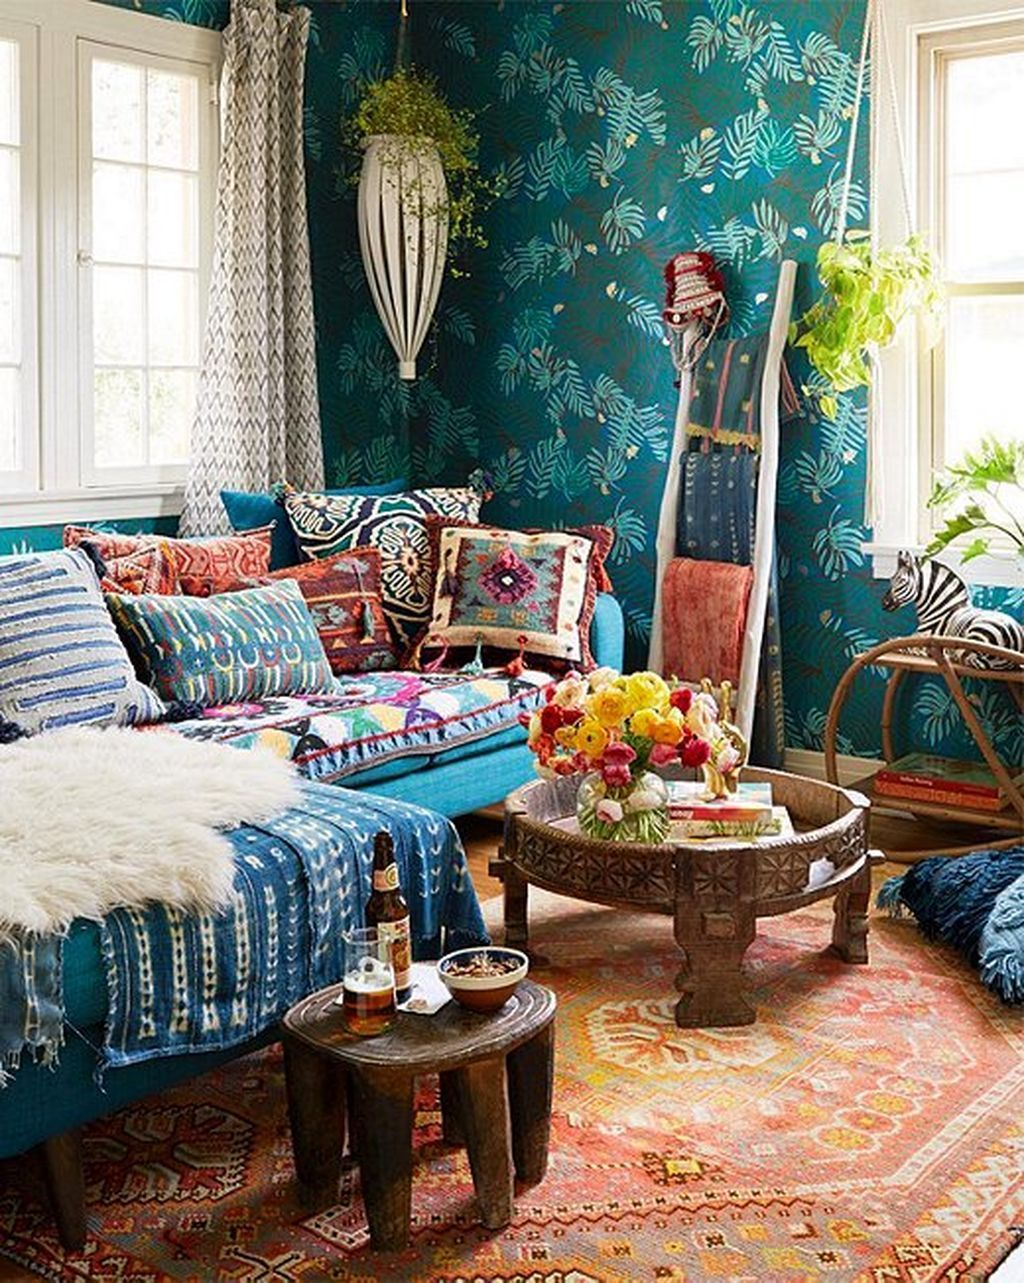 Attractive Cool 99 Modern Rustic Bohemian Living Room Design Ideas. More At  Http://99homy.com/2017/09/28/99 Modern Rustic Bohemian Living Room Design  Ideas/